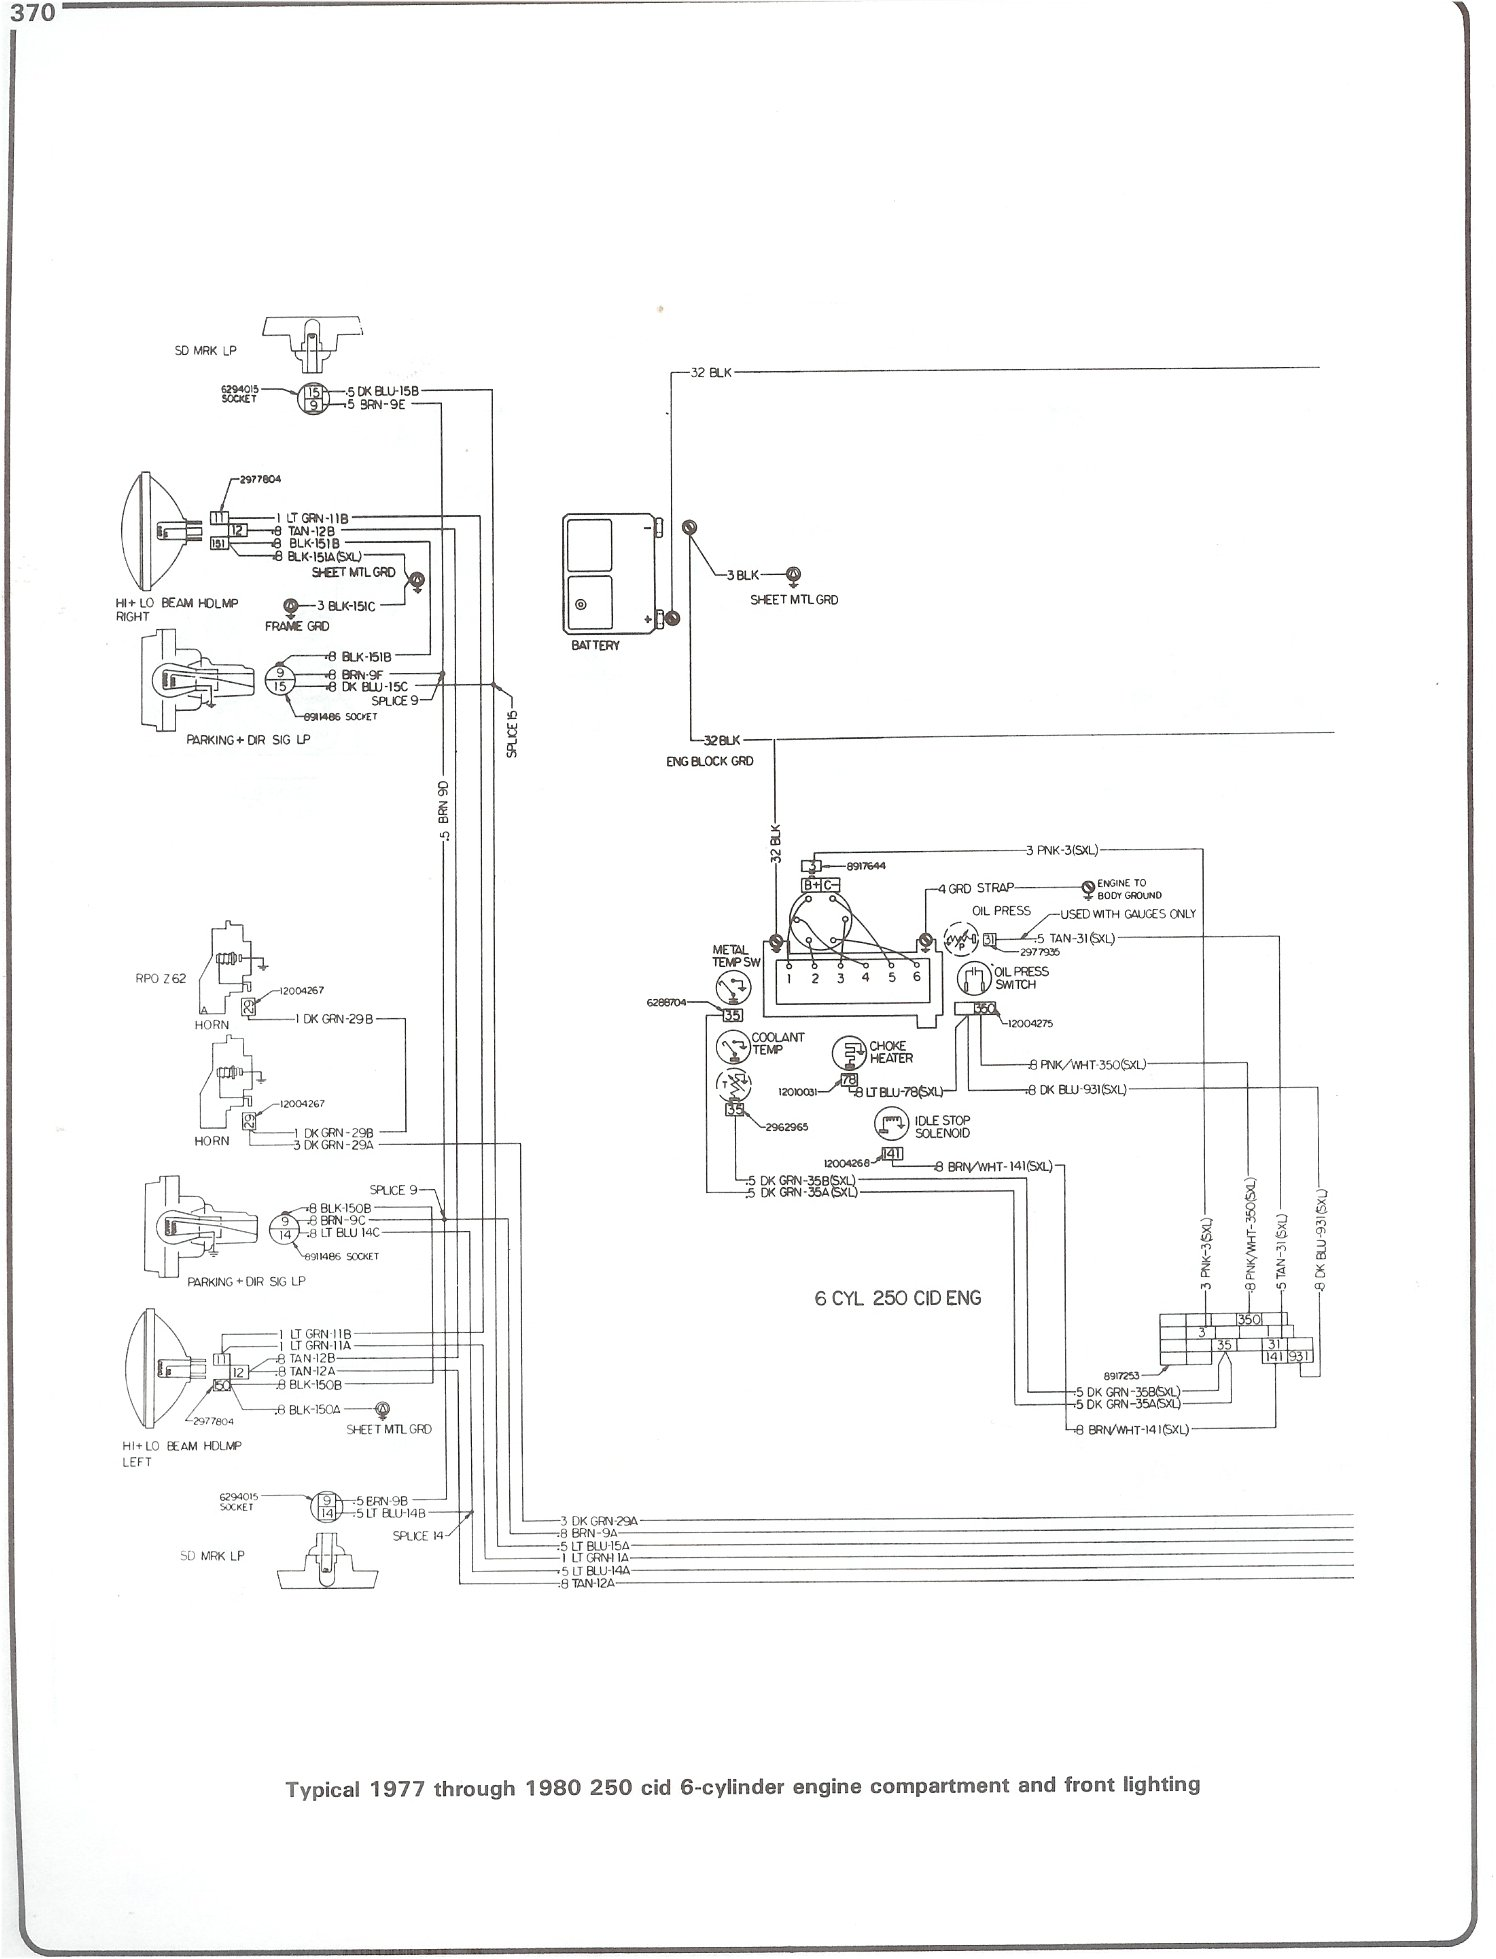 1985 chevy starter wiring diagram 80 chevy starter wiring diagram